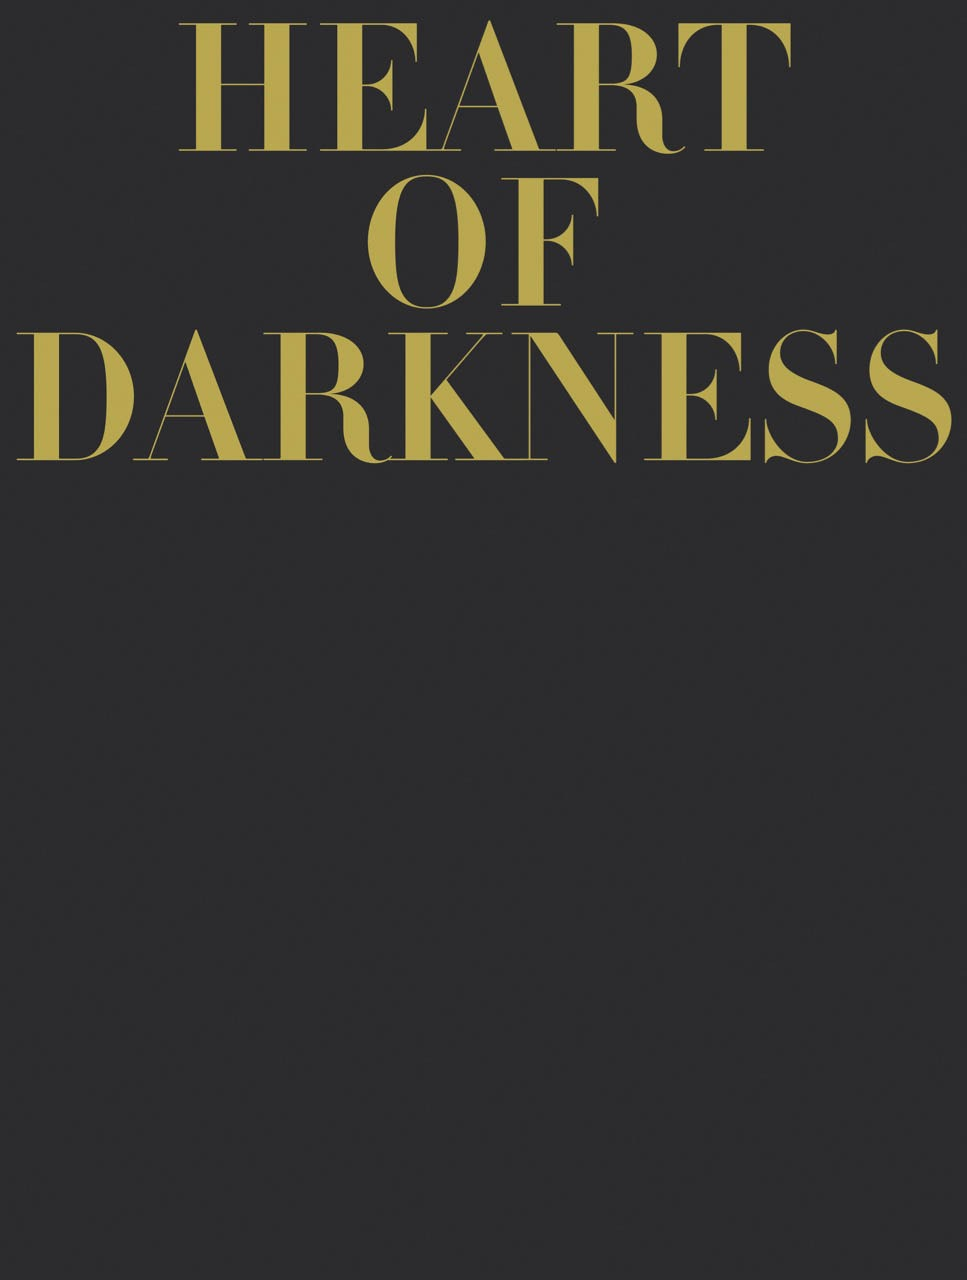 tone book heart darkness conrad Joseph conrad's heart of darkness retells the story of marlow's job as an ivory transporter down the congo through his journey, marlow develops an intense inte.